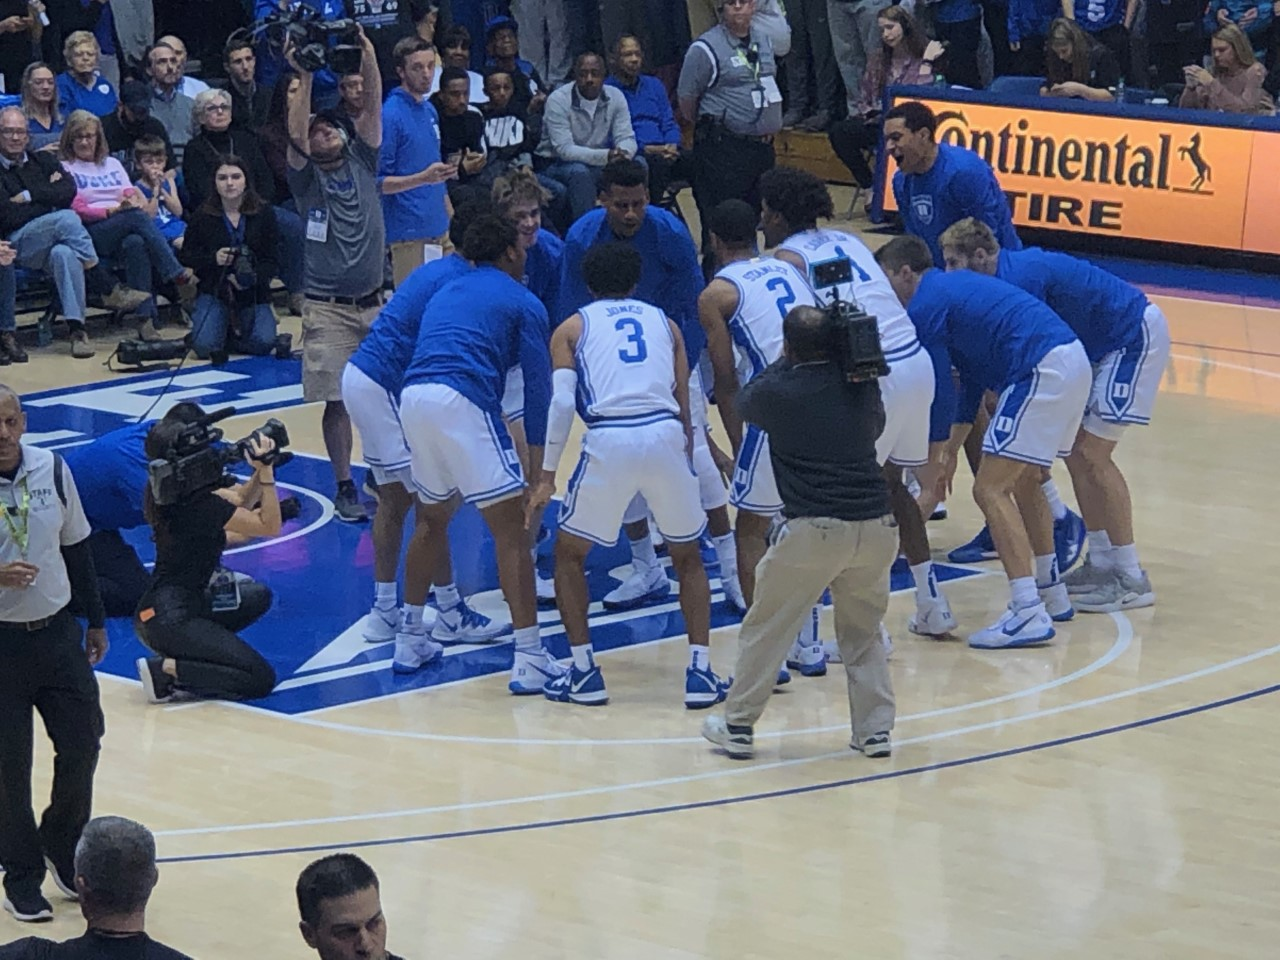 """The huddle"" is considered a pregame ritual each home game."